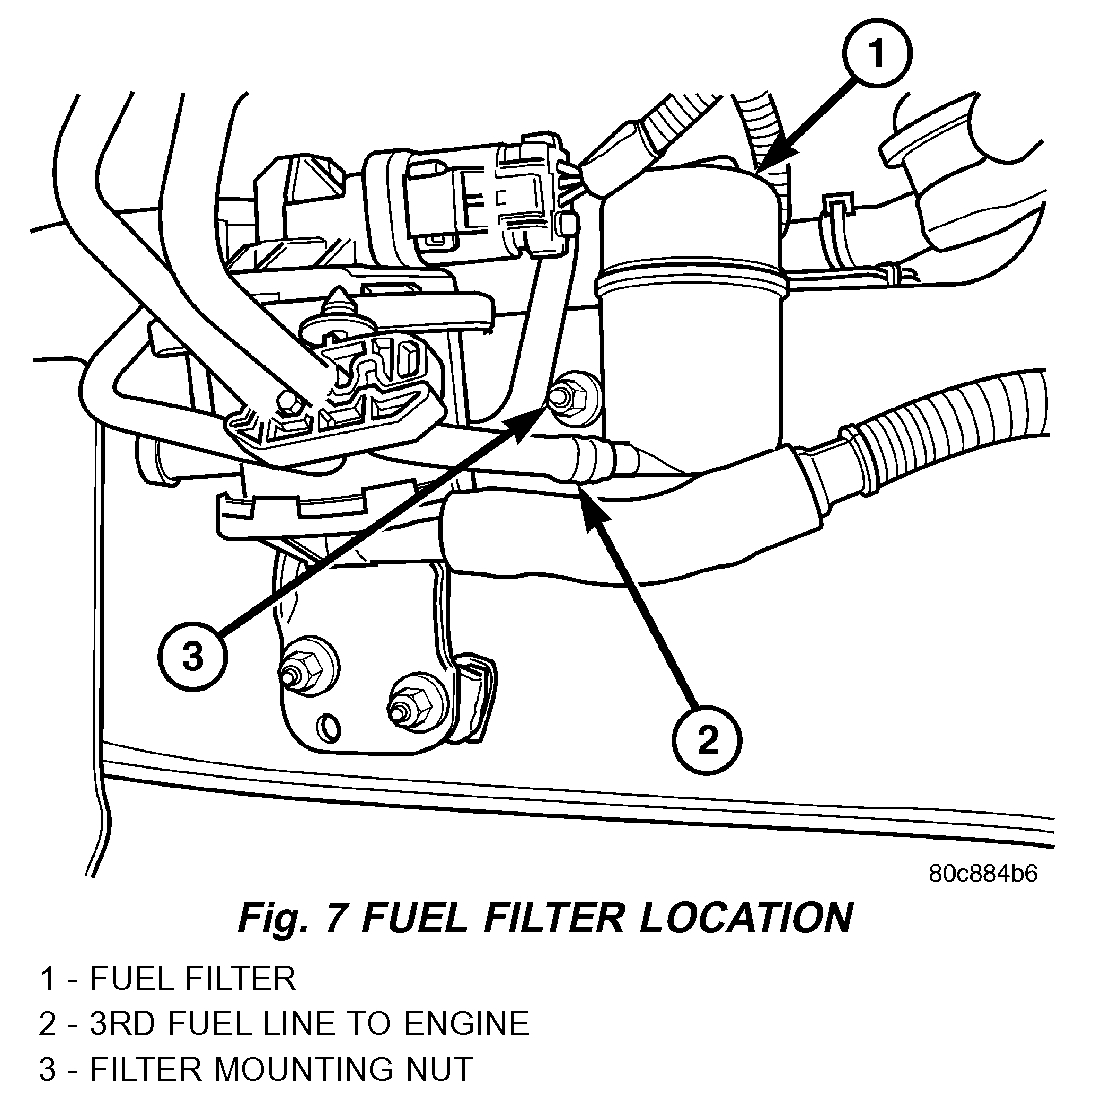 2004 Jeep Liberty Fuel Filter Location - Wiring Diagram All phone-approve -  phone-approve.huevoprint.it | 2005 Jeep Liberty Fuel Filter |  | Huevoprint